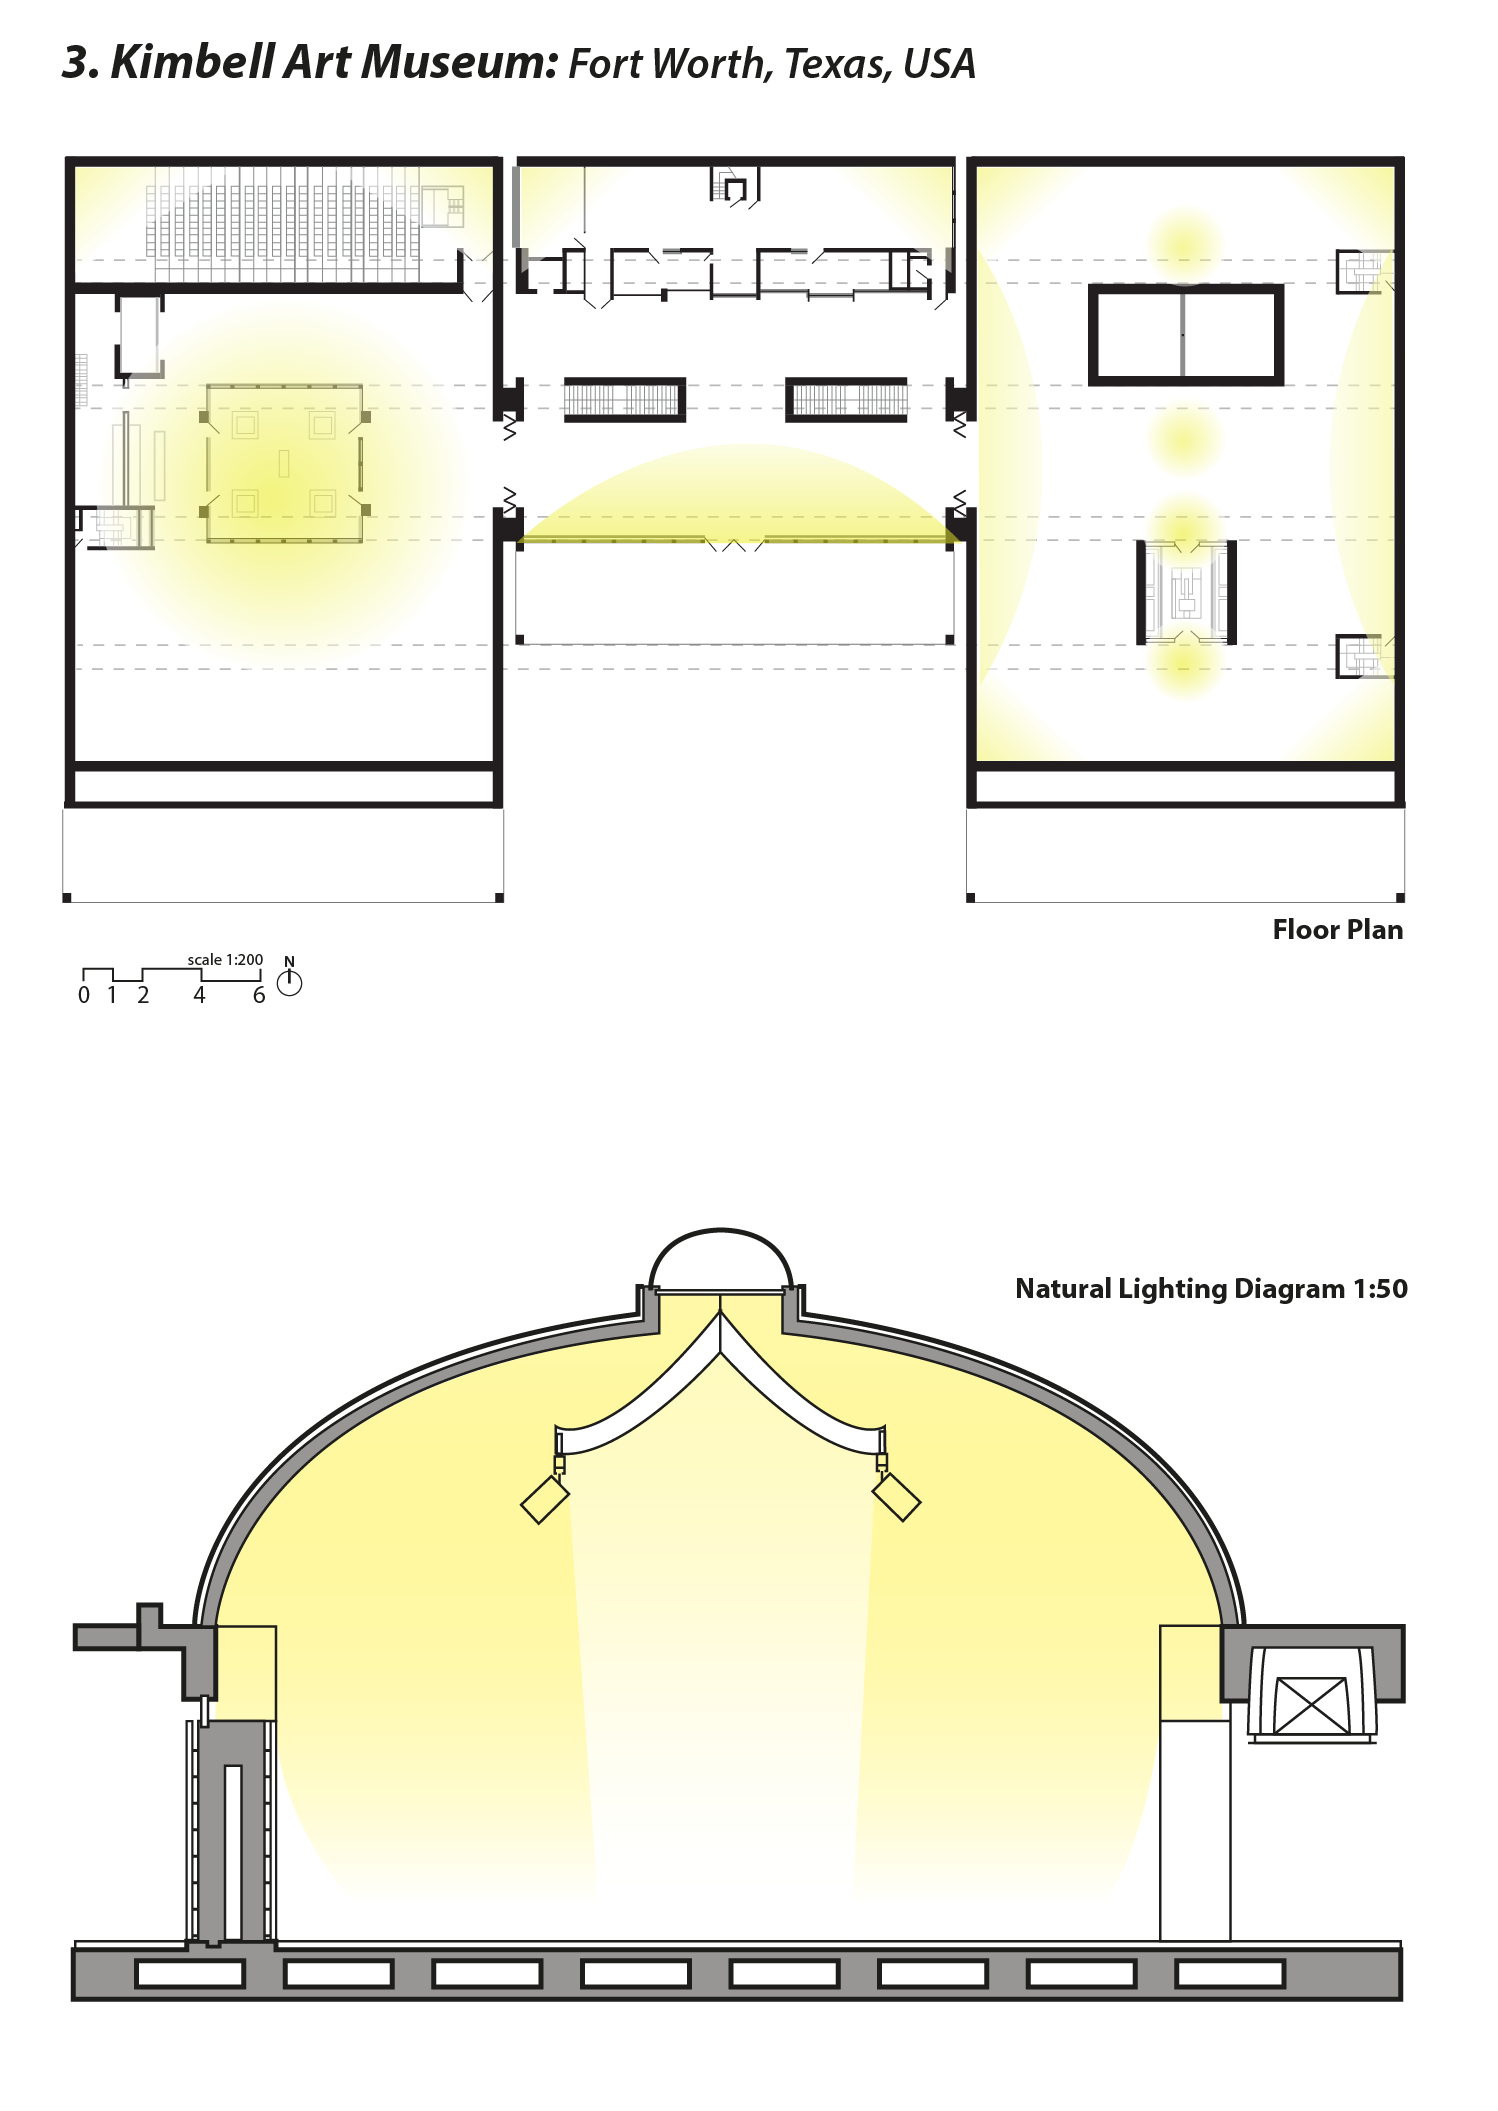 natural lighting study diagram of the kimbell museum arch design rembrandt lighting diagram natural lighting study diagram of the kimbell museum